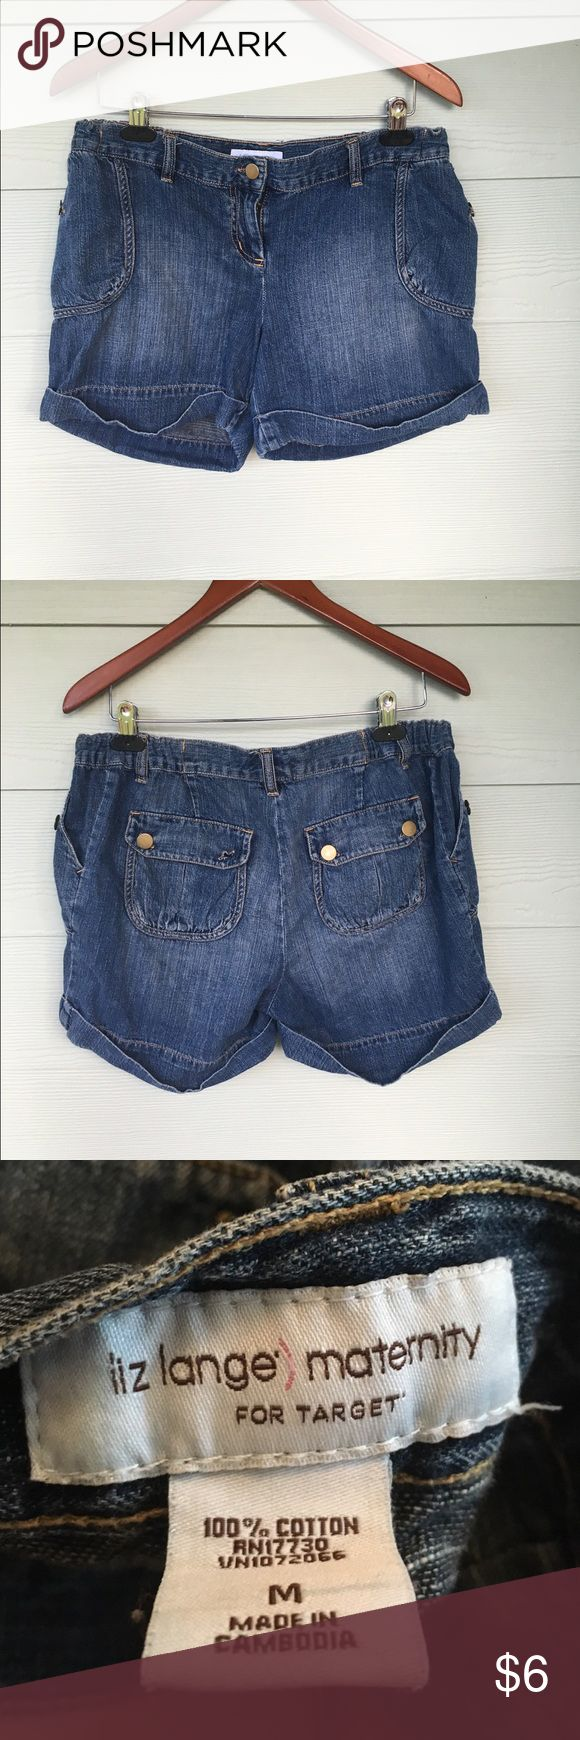 Maternity shorts Liz Lange for target maternity Jean shorts size medium. 100% cotton and in good condition Liz Lange for Target Shorts Jean Shorts